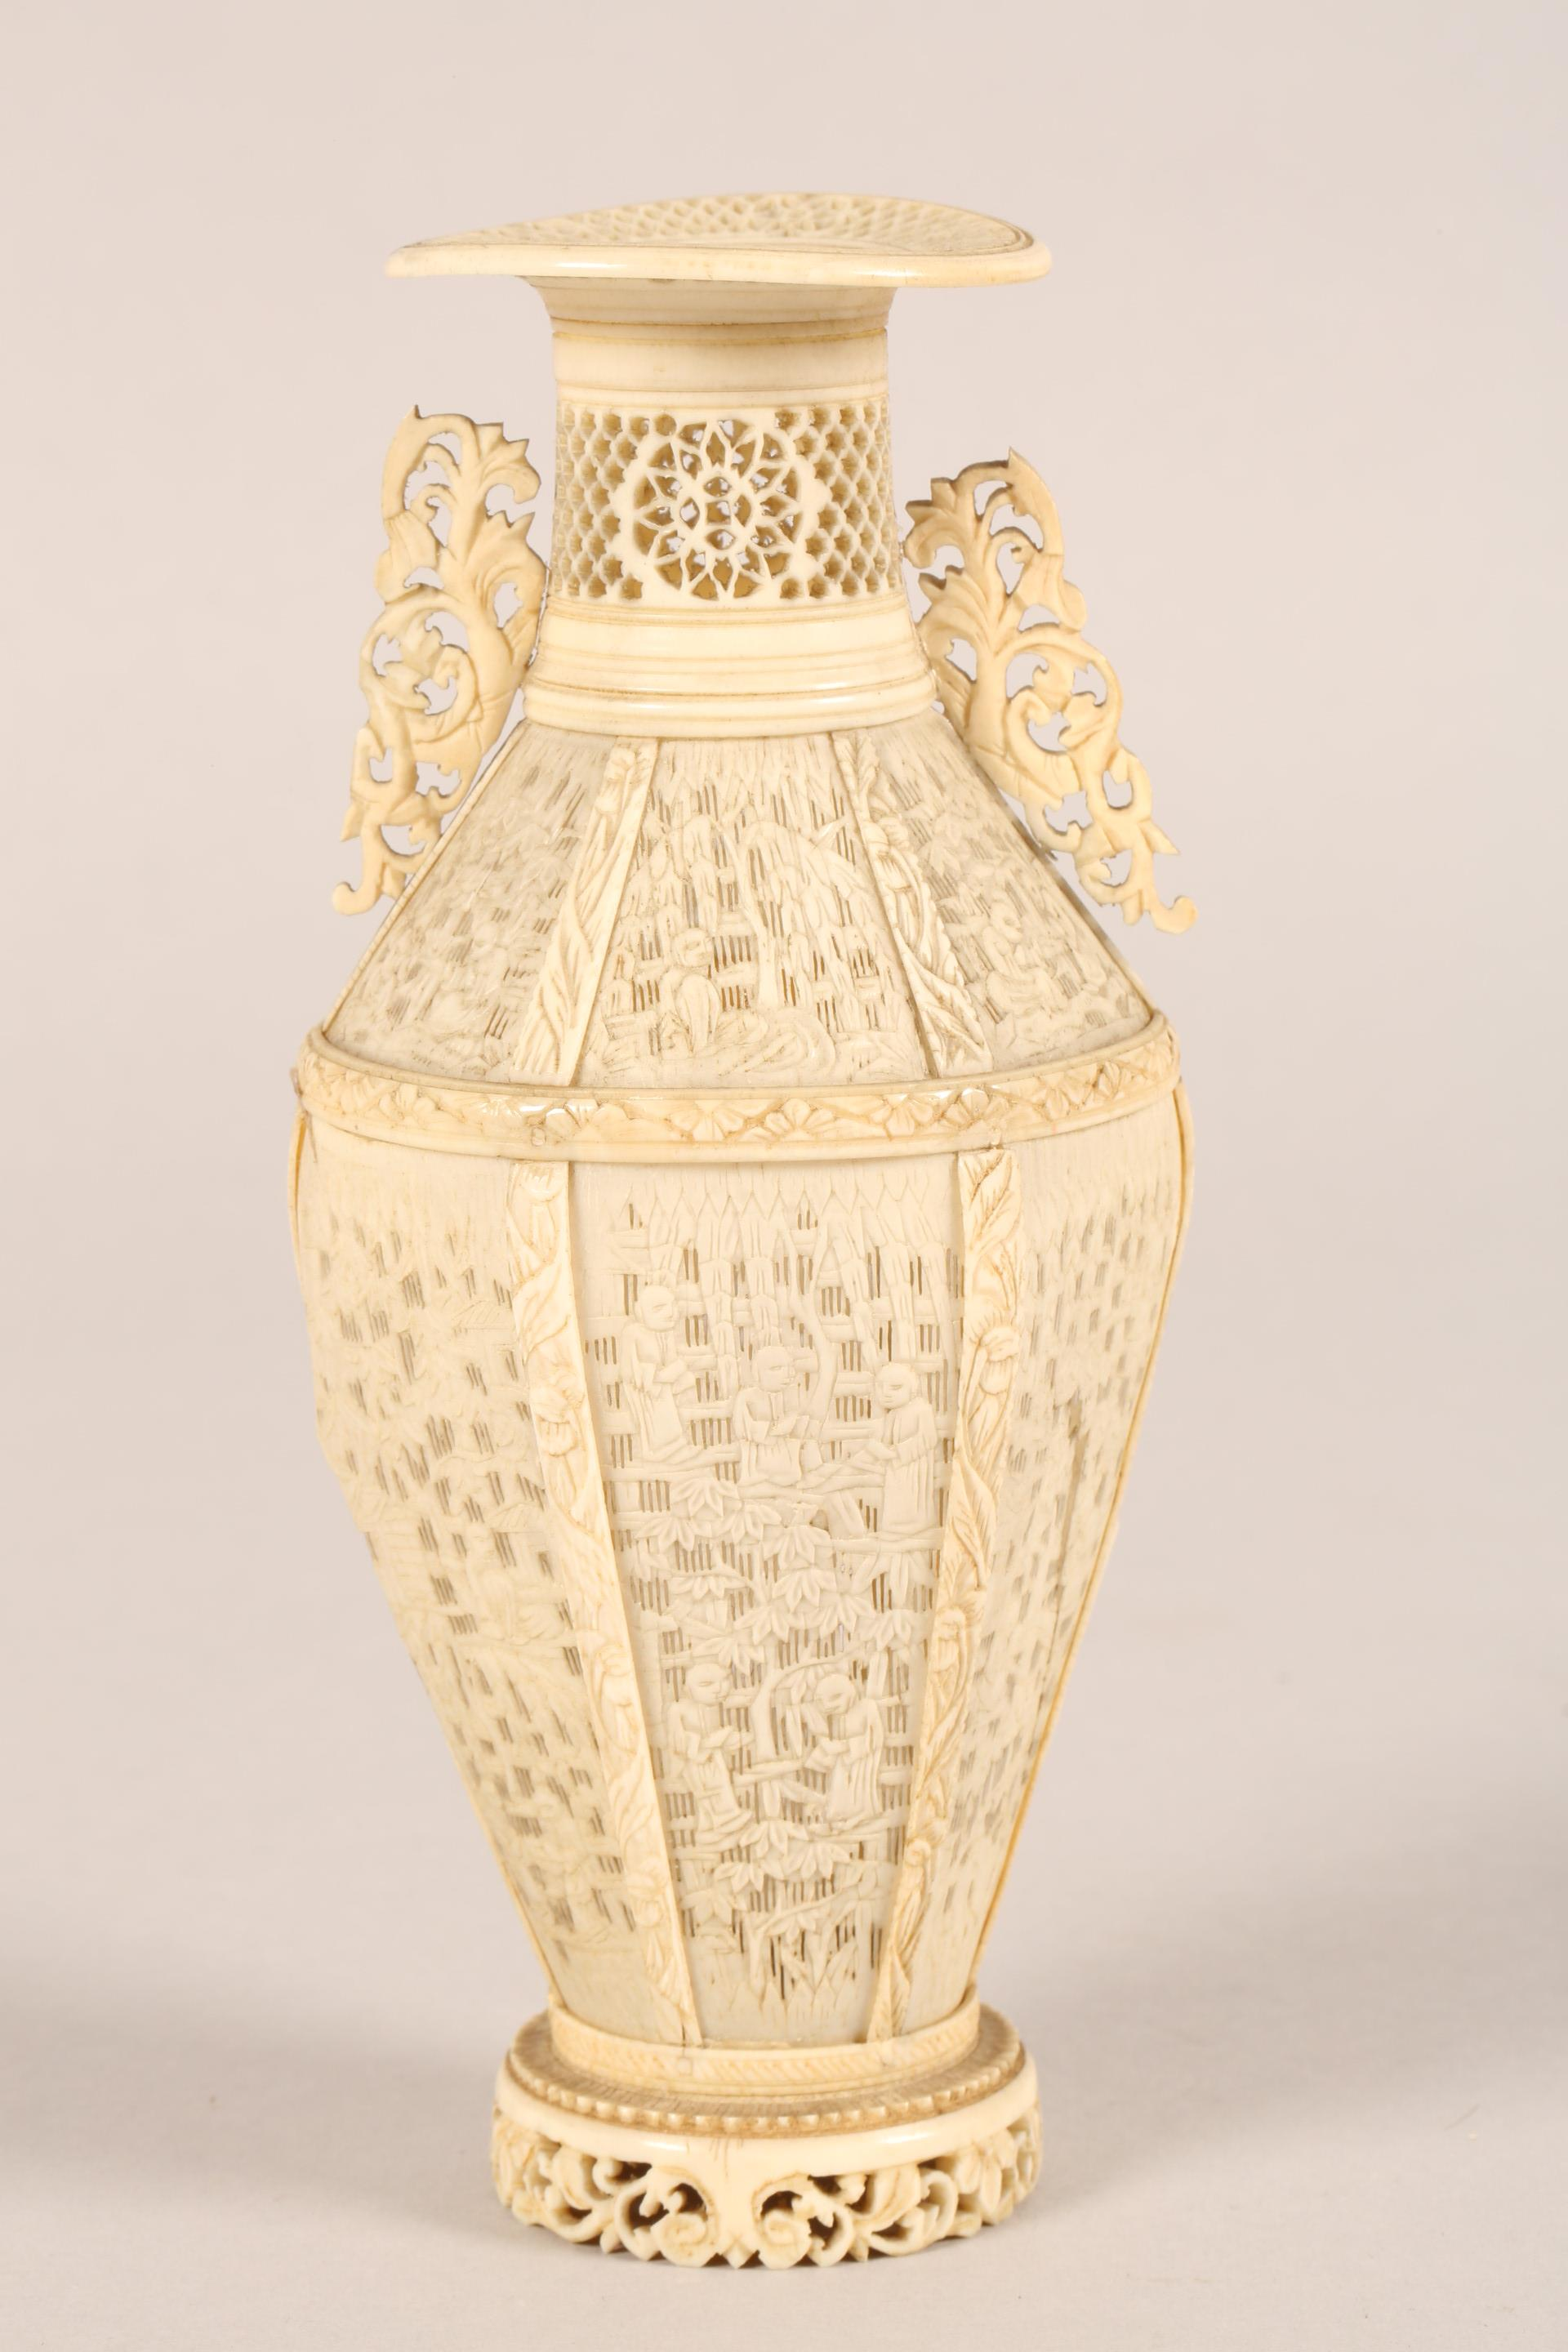 19th century Chinese Canton reticulated ivory twin handled vase (minor damages) 17.5cm high. - Image 7 of 7